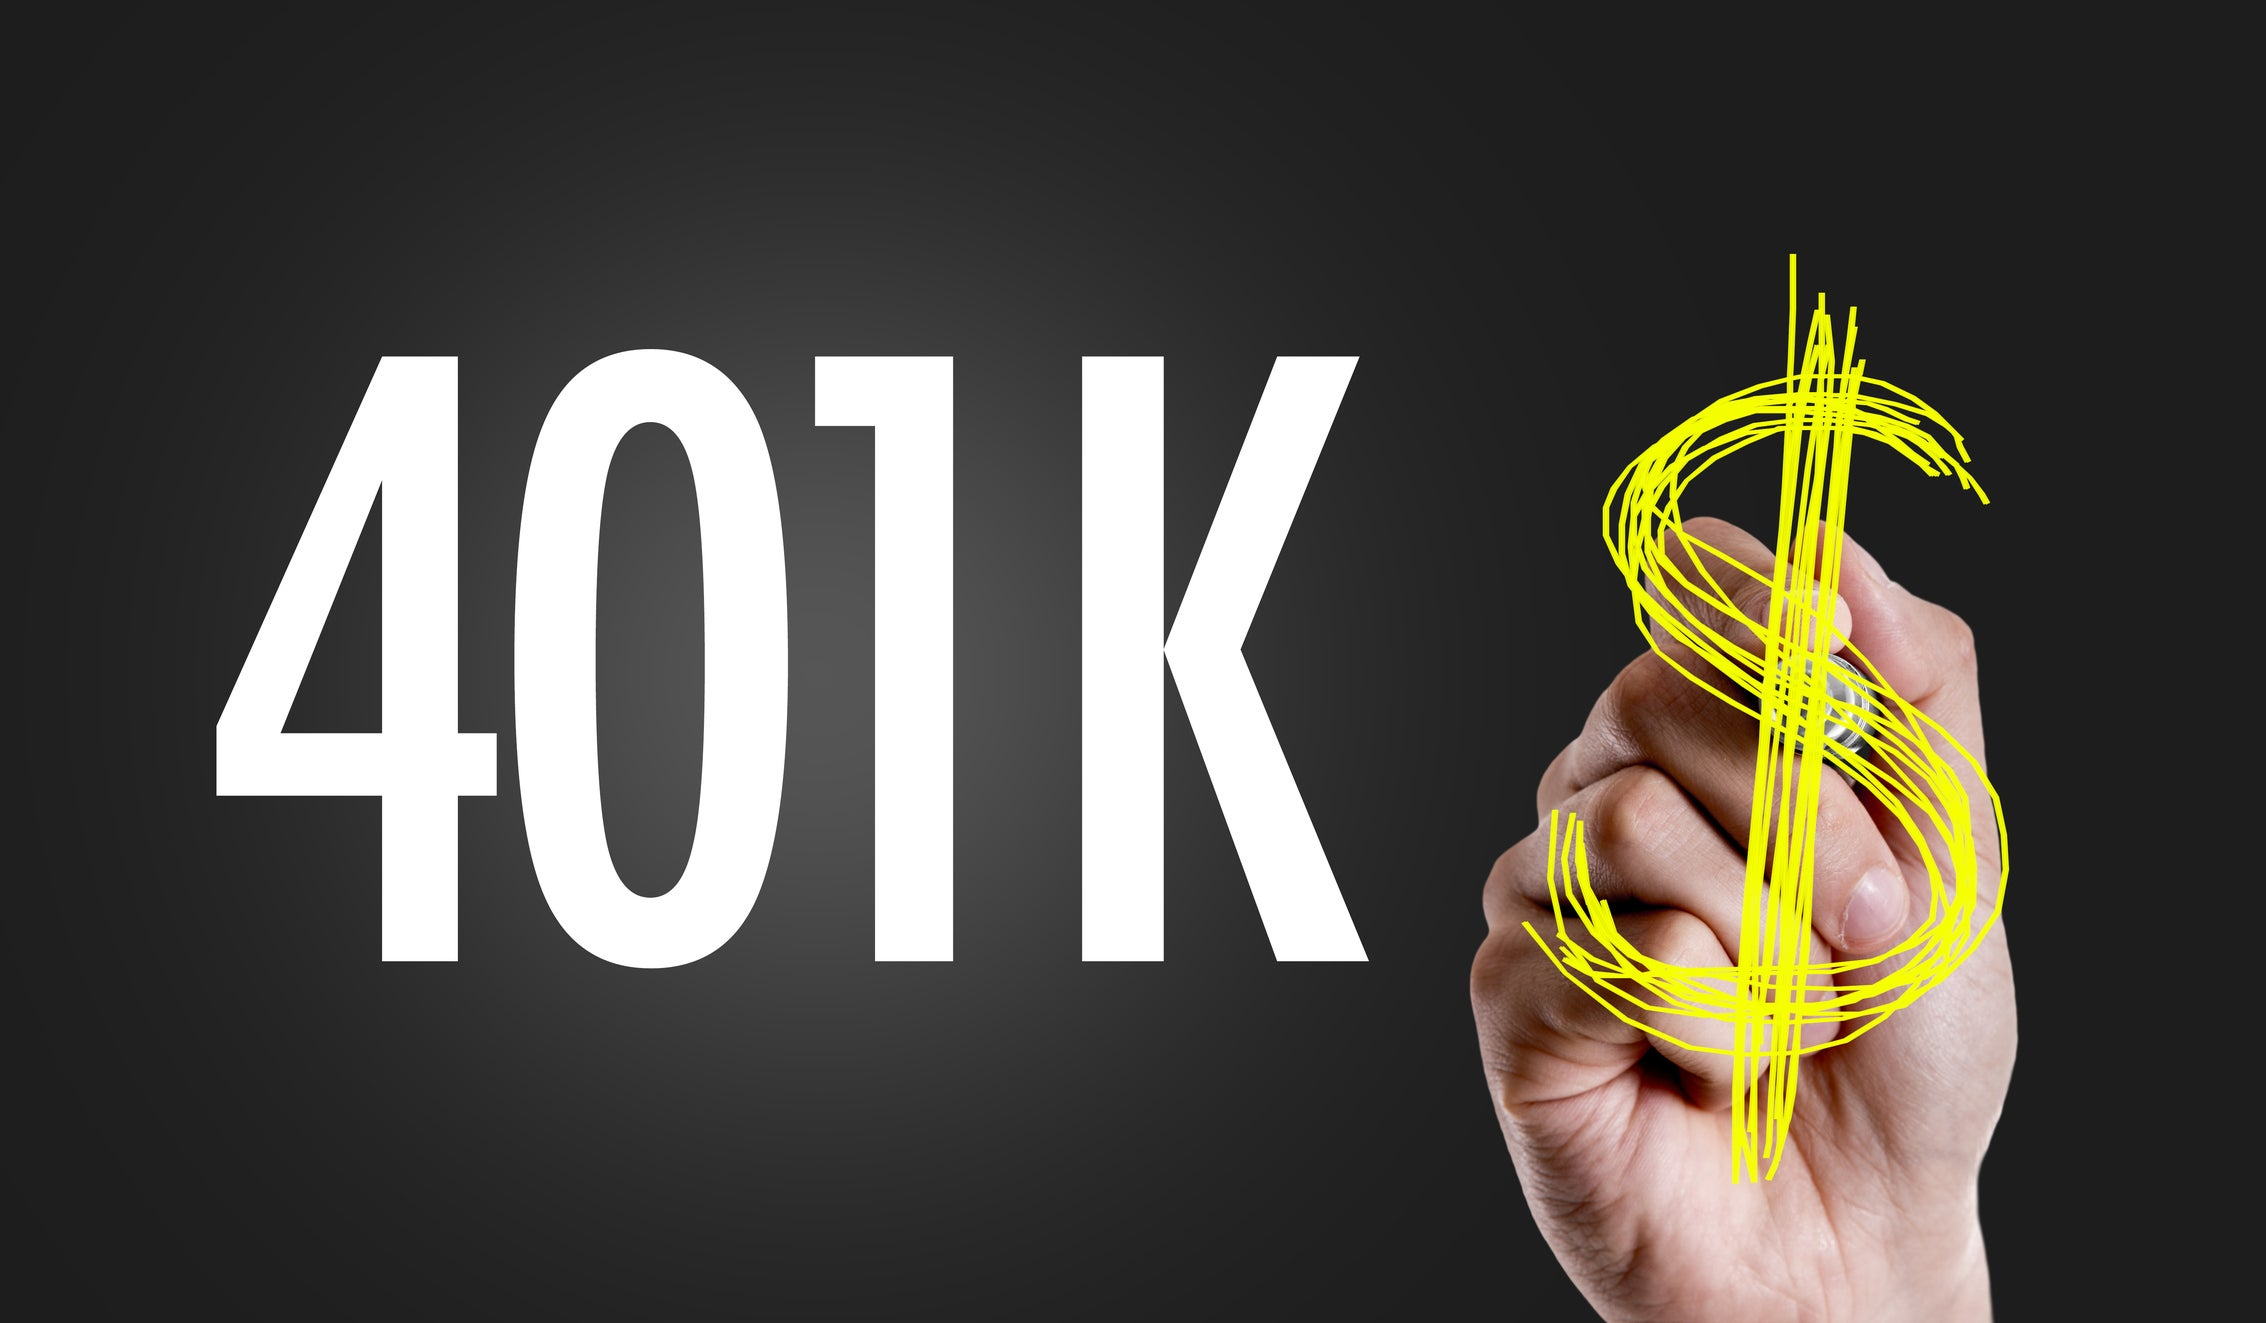 401K in white letters on a black background, with a hand drawing a yellow dollar sign right next to it